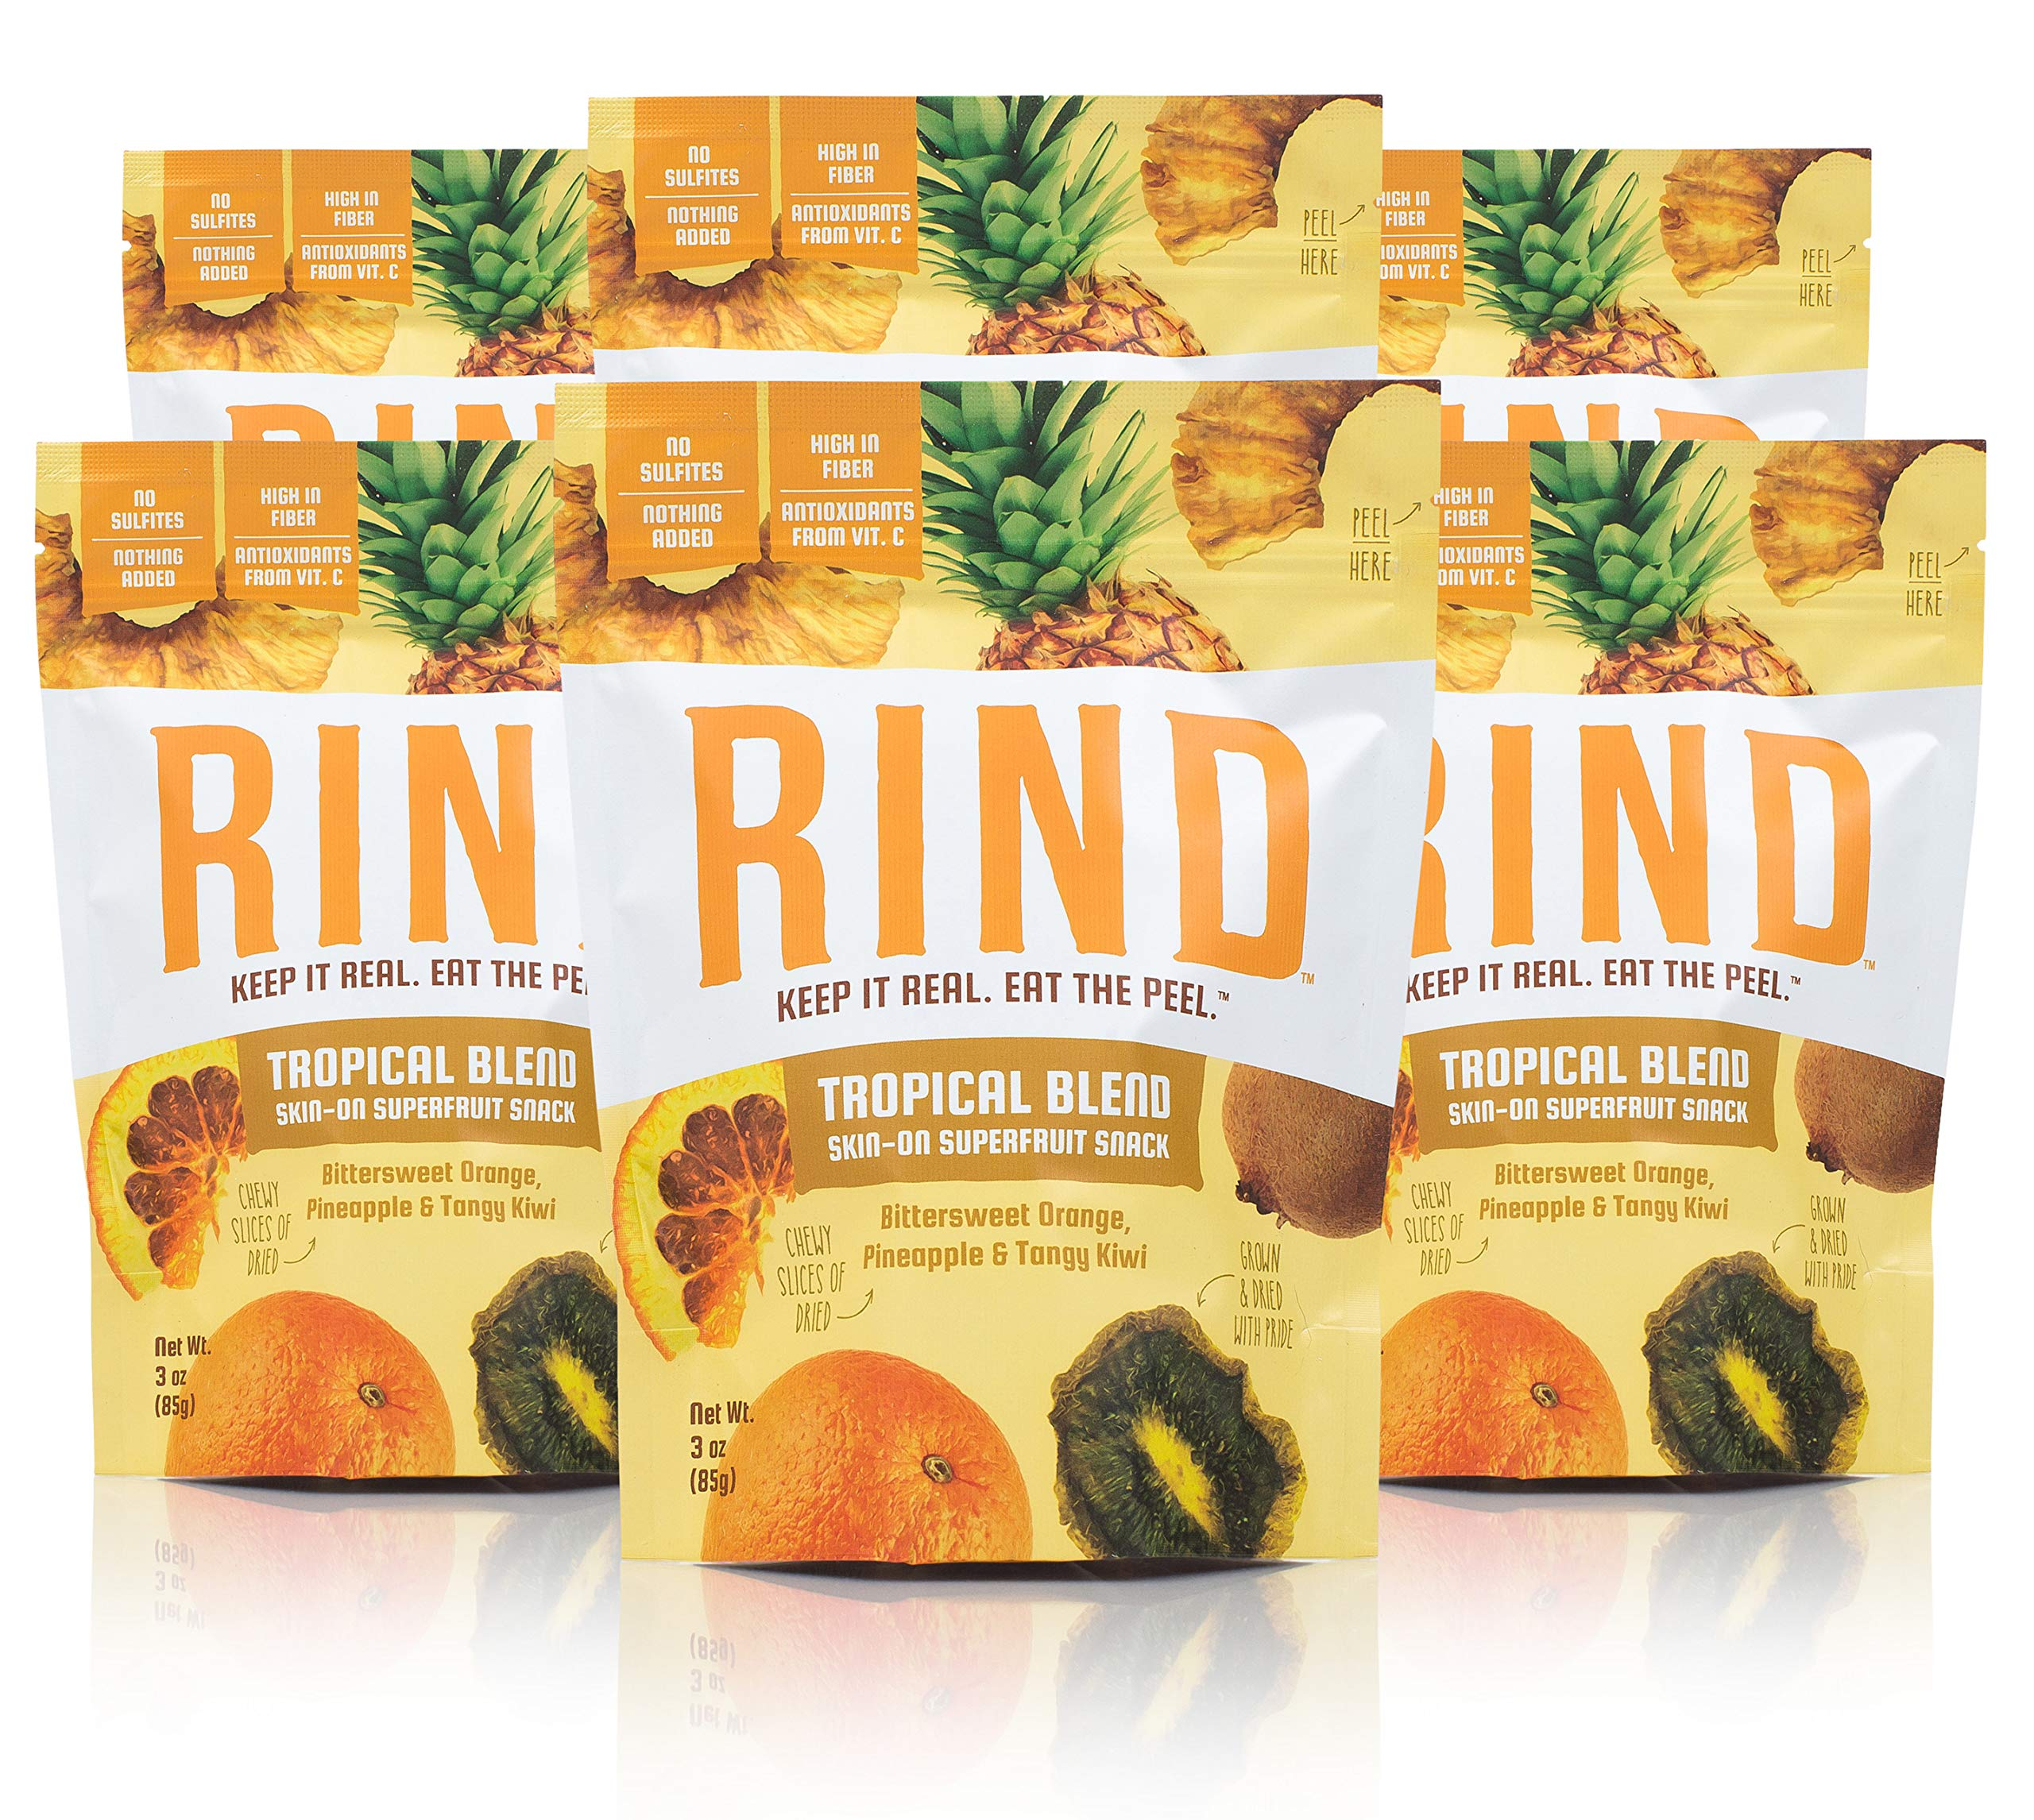 RIND Snacks Tropical Blend Sun-Dried Skin-On Superfruit Snack, Bittersweet Orange, Pineapple, and Tangy Kiwi, High Fiber, No Sulfites, Antioxidants from Vitamin C, Gluten-Free, 3oz Pouch, Pack of 6 by RIND Snacks